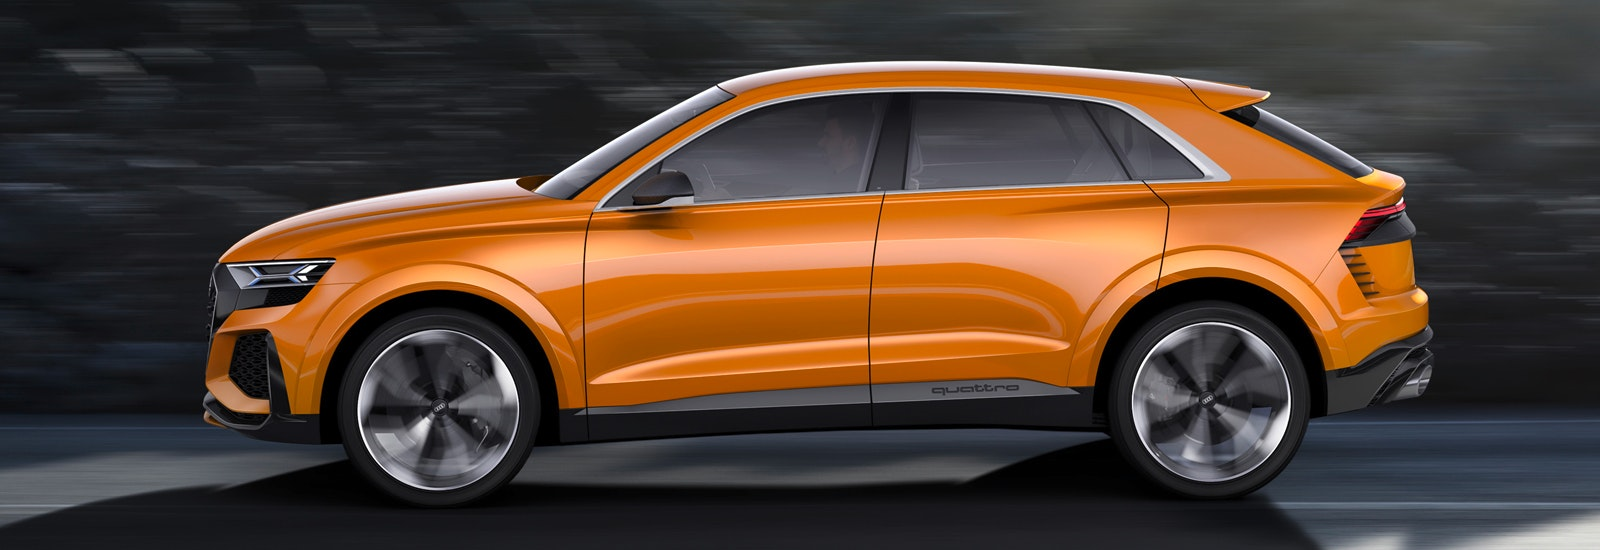 2018 Audi Q8 price, specs and release date | carwow